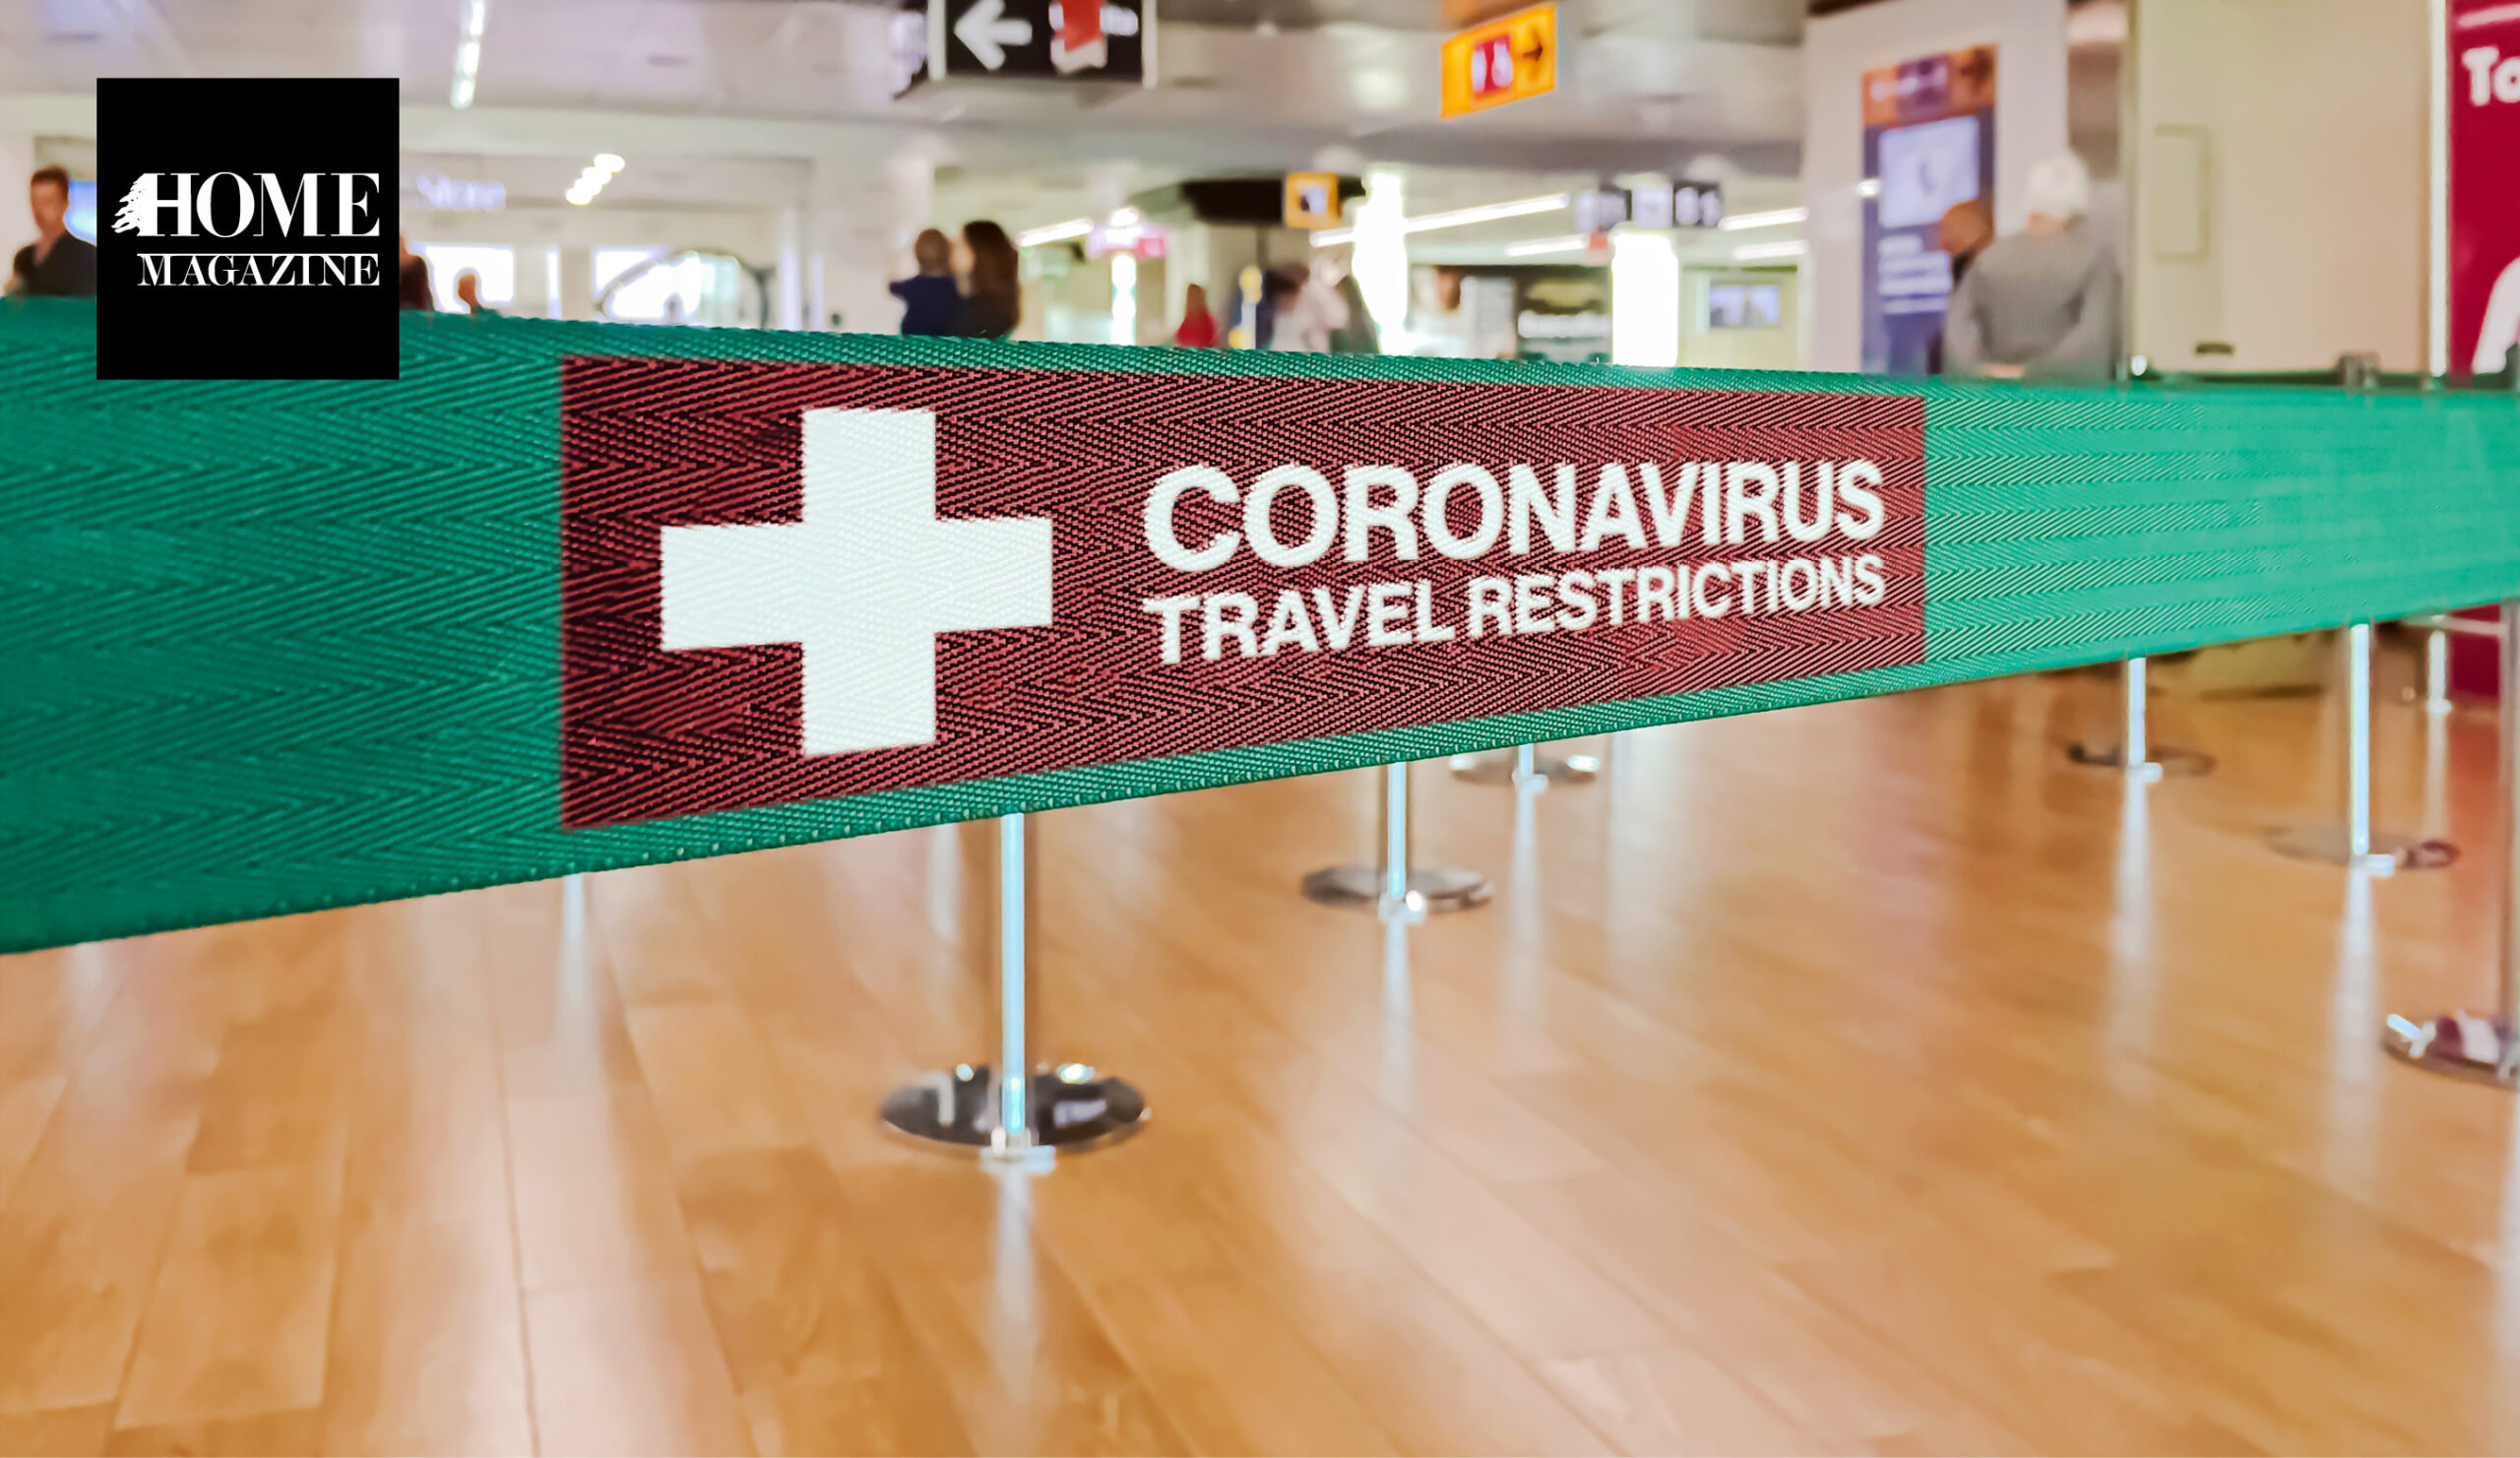 Impact of COVID-19 on the travel, hospitality and tourism industry